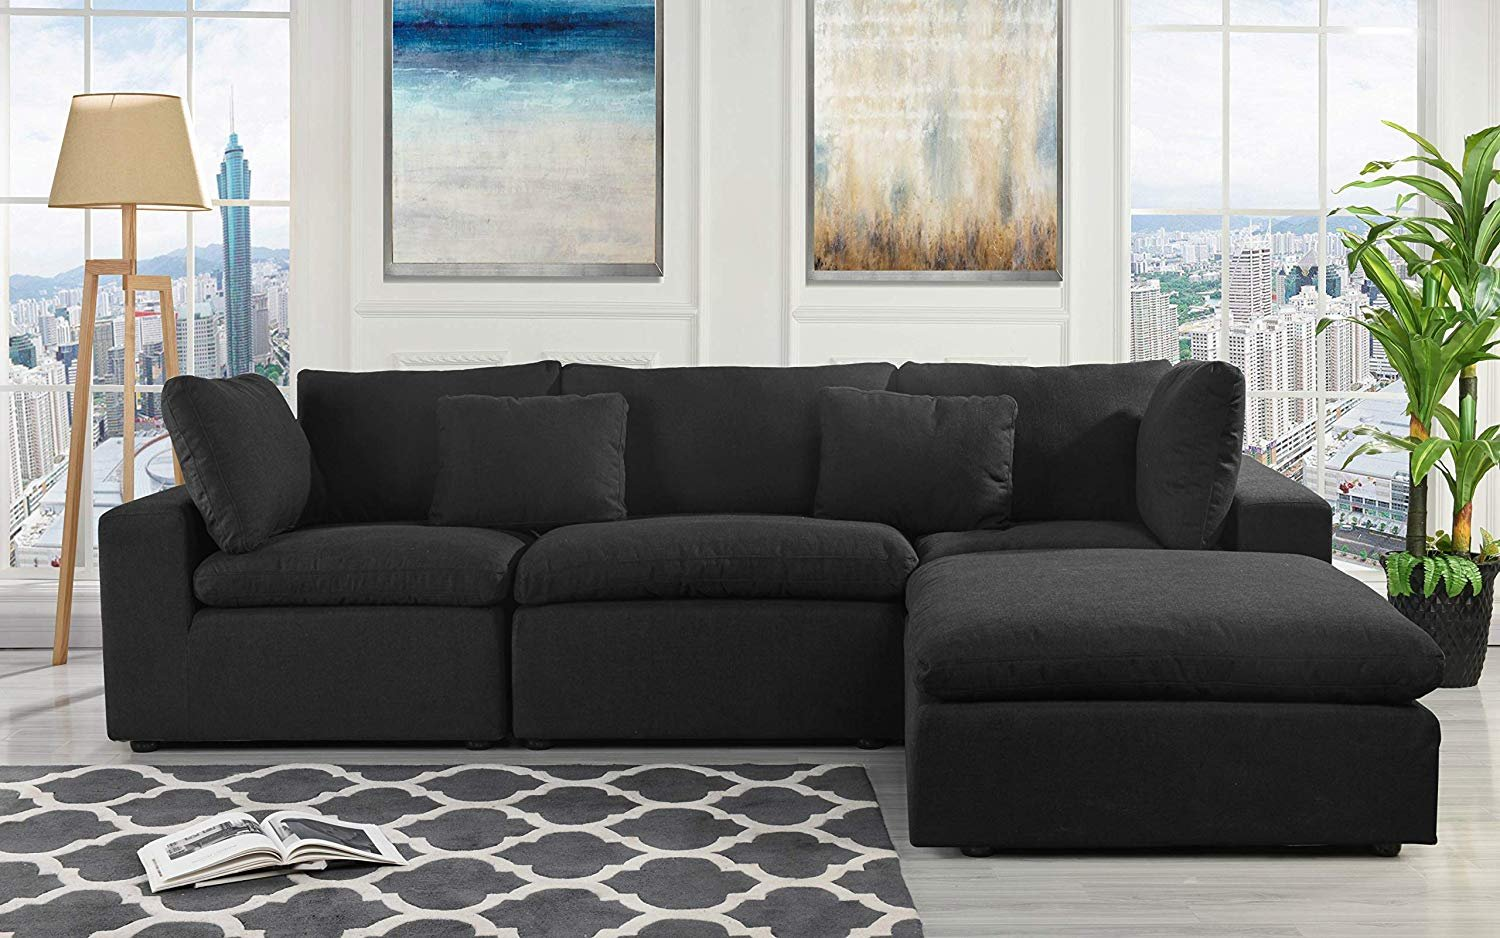 Fabric Sectional Sofa L Shape Couch